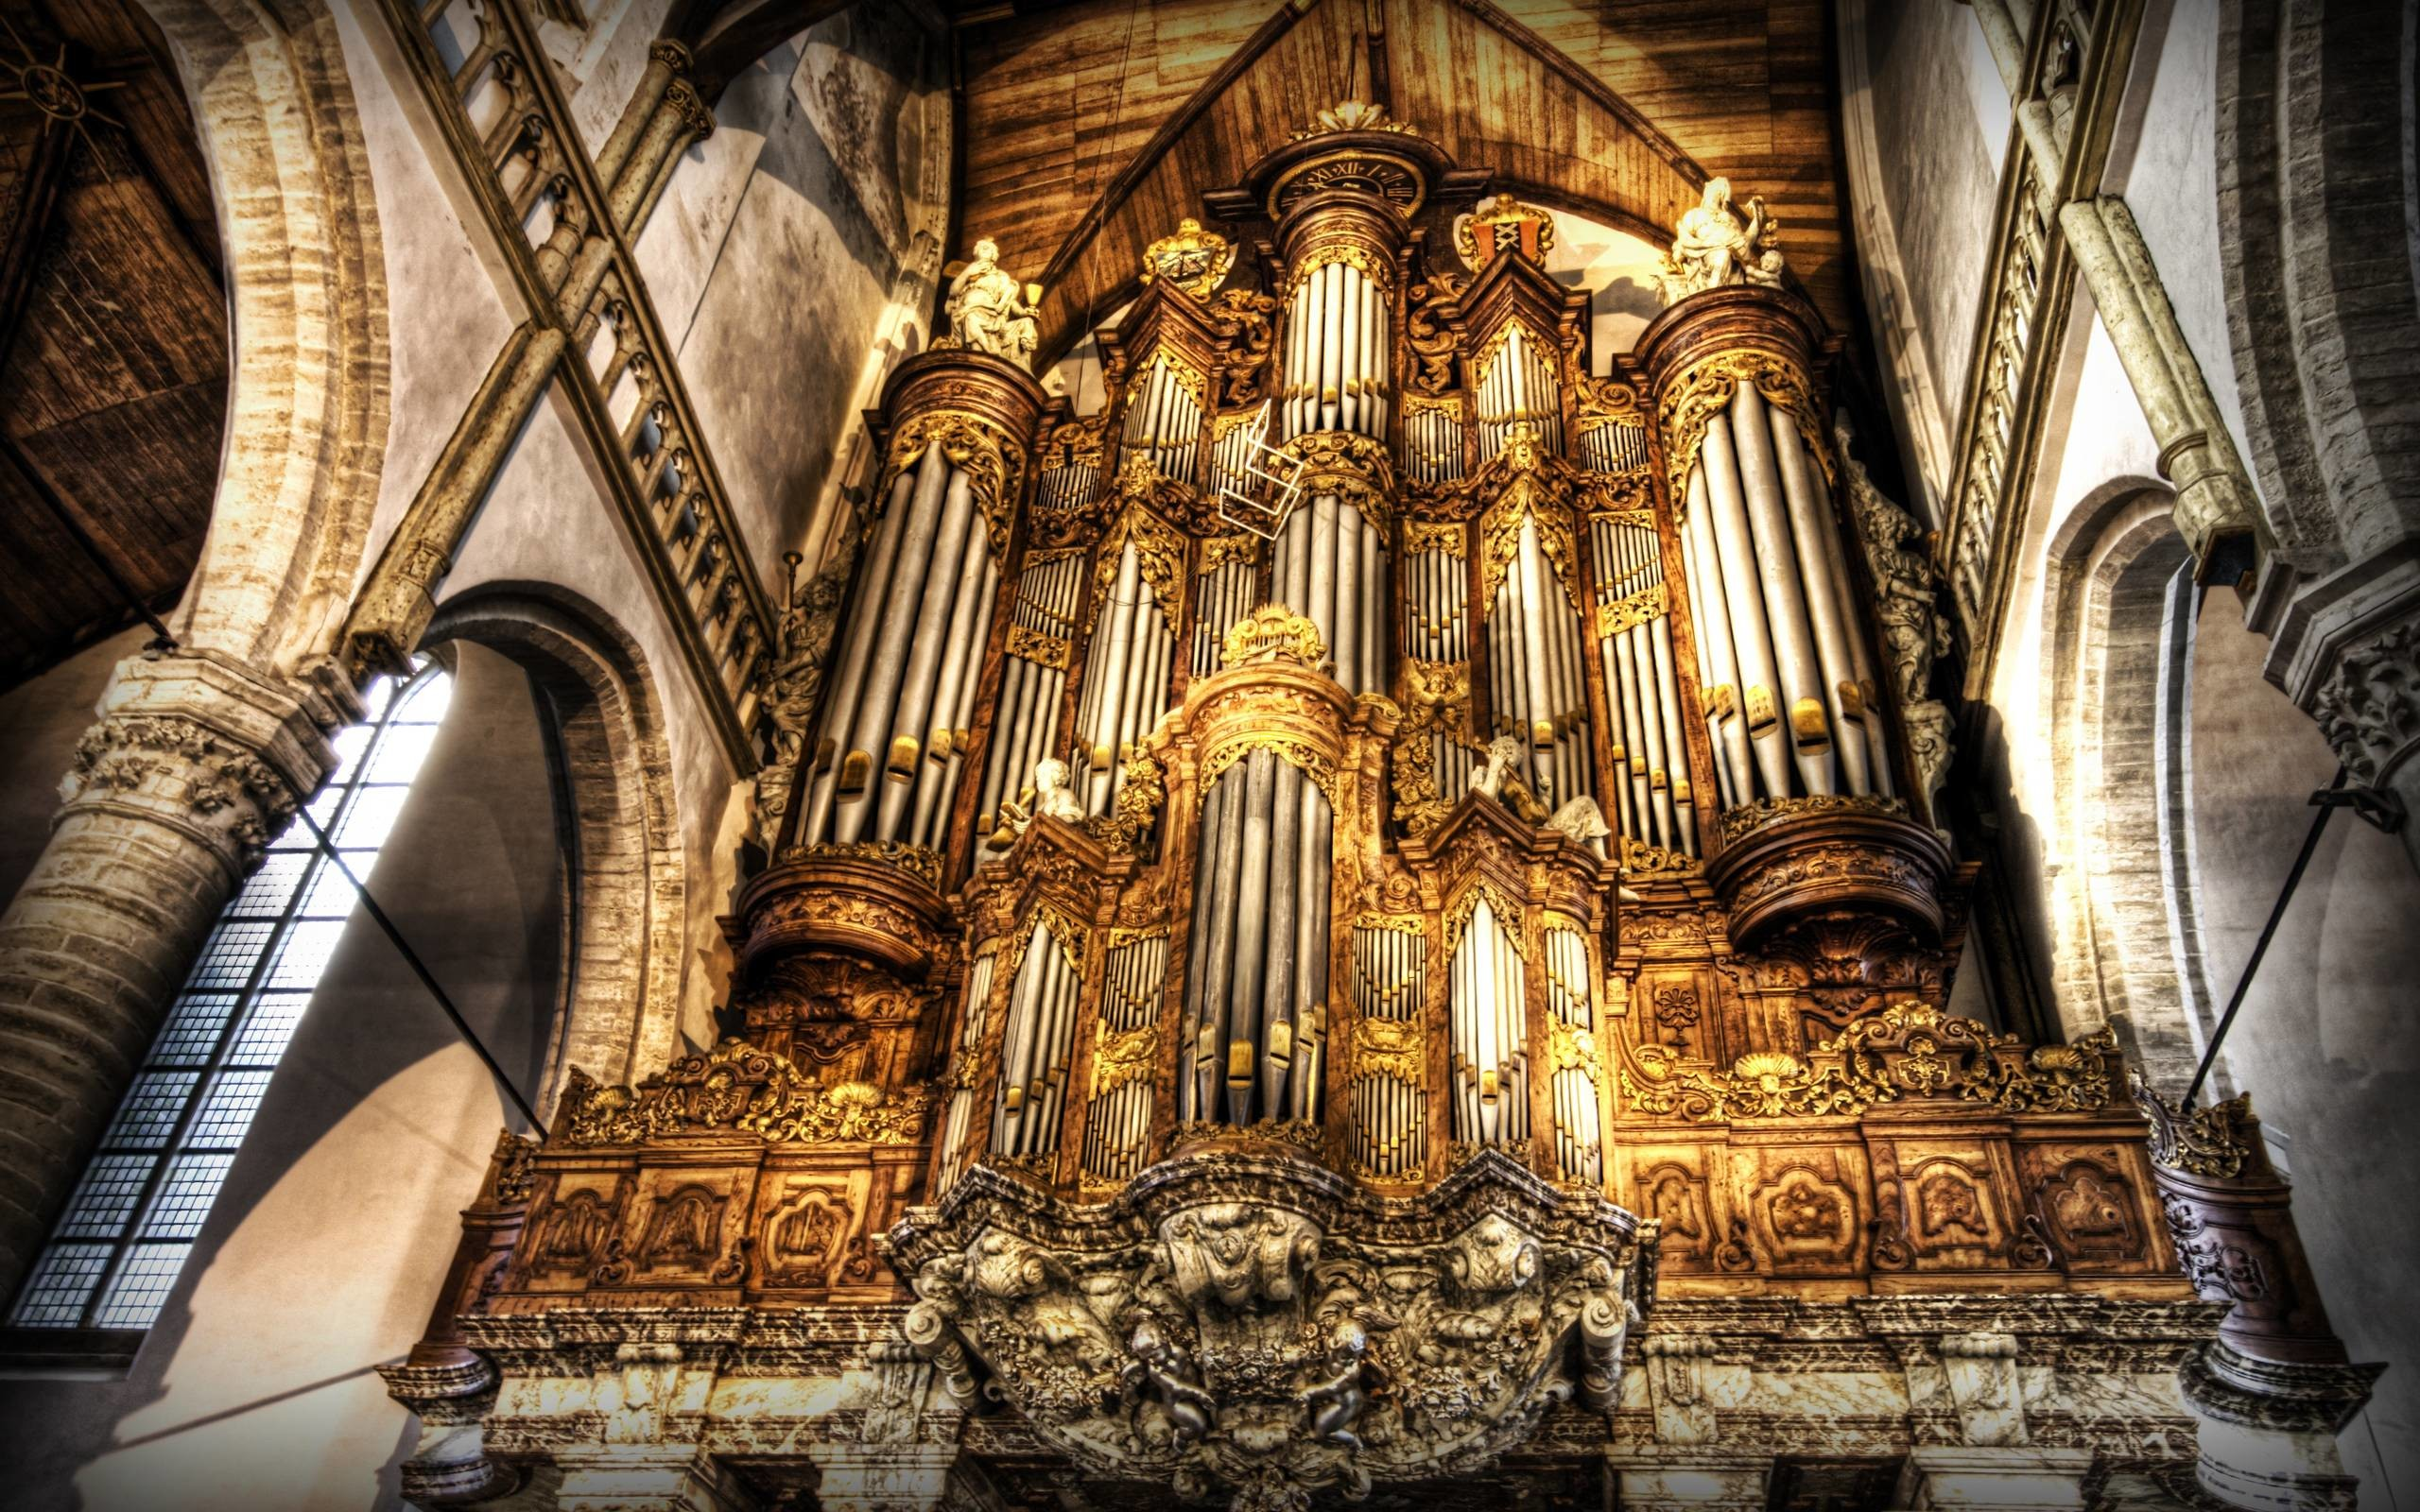 2560x1600 10 Pipe Organ Wallpapers | Pipe Organ Backgrounds